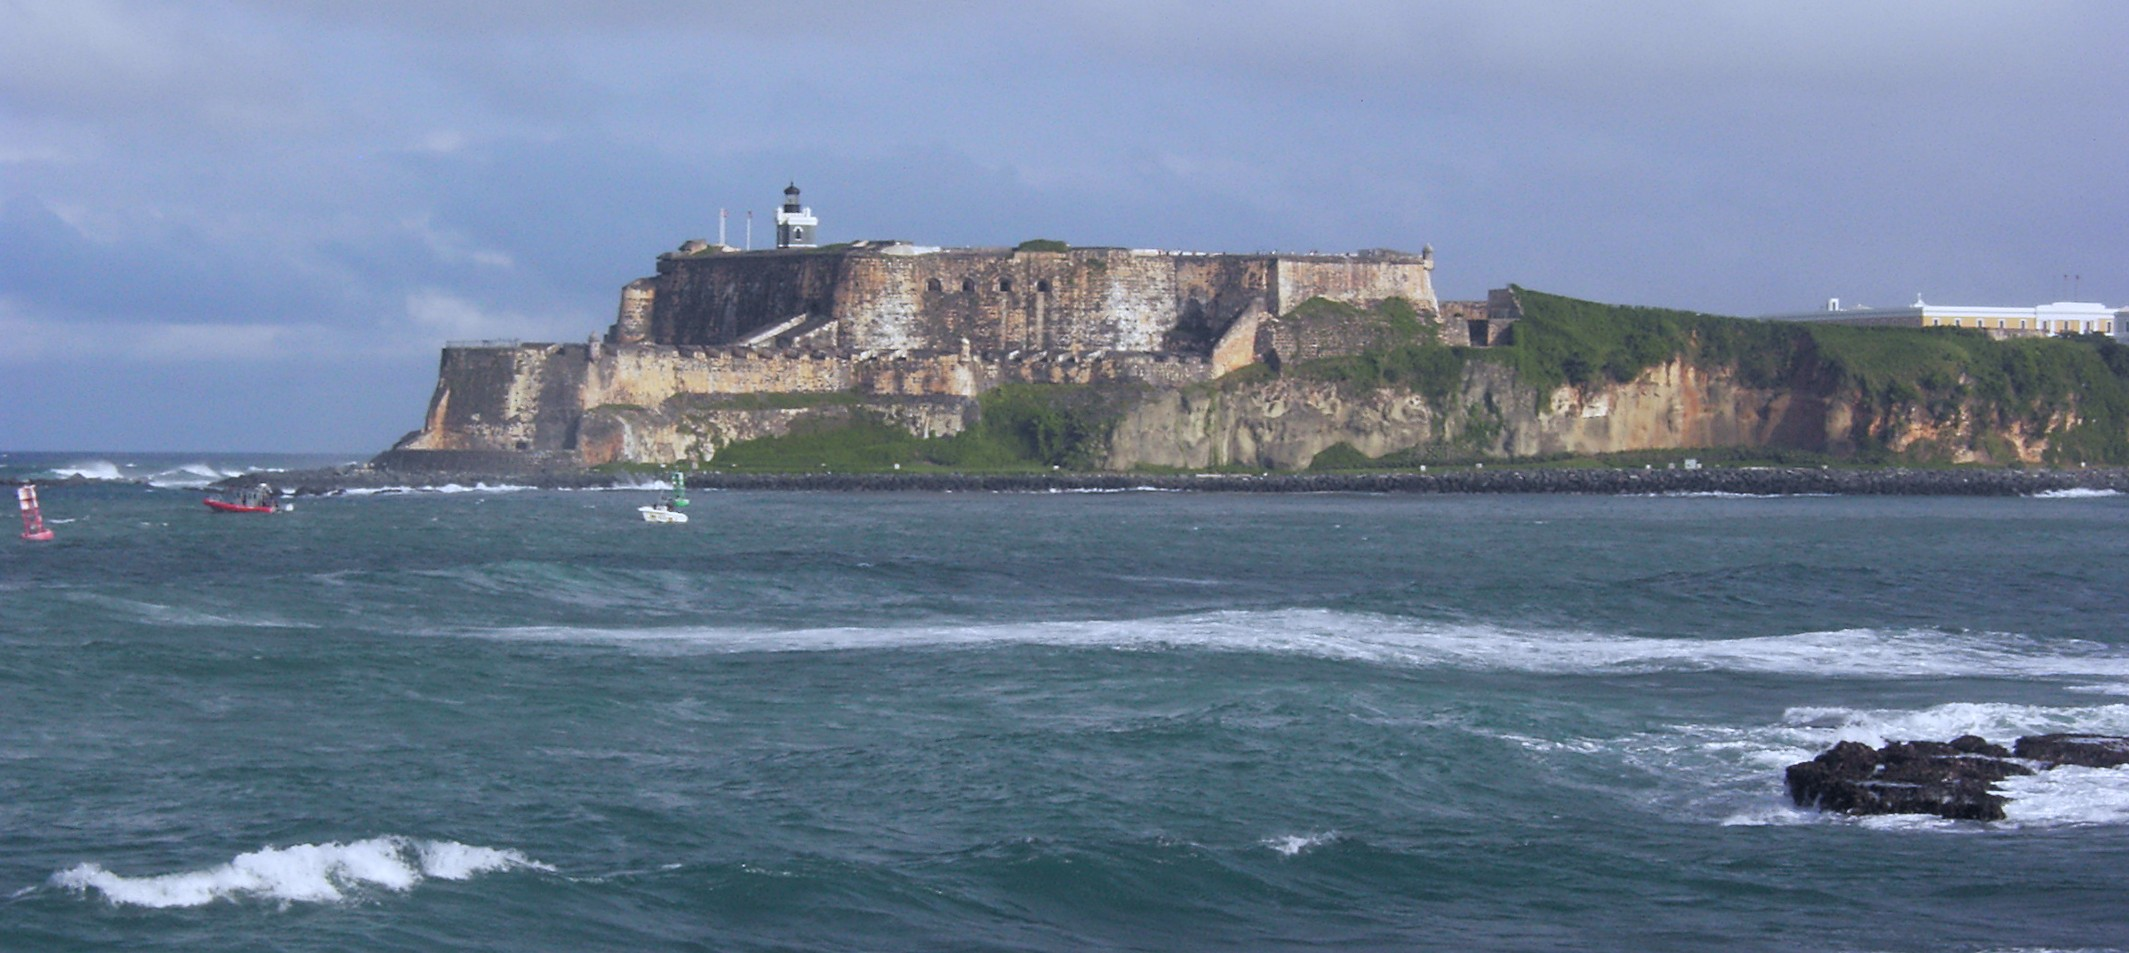 http://upload.wikimedia.org/wikipedia/commons/6/60/San_Felipe_del_Morro_view_across_bay.jpg